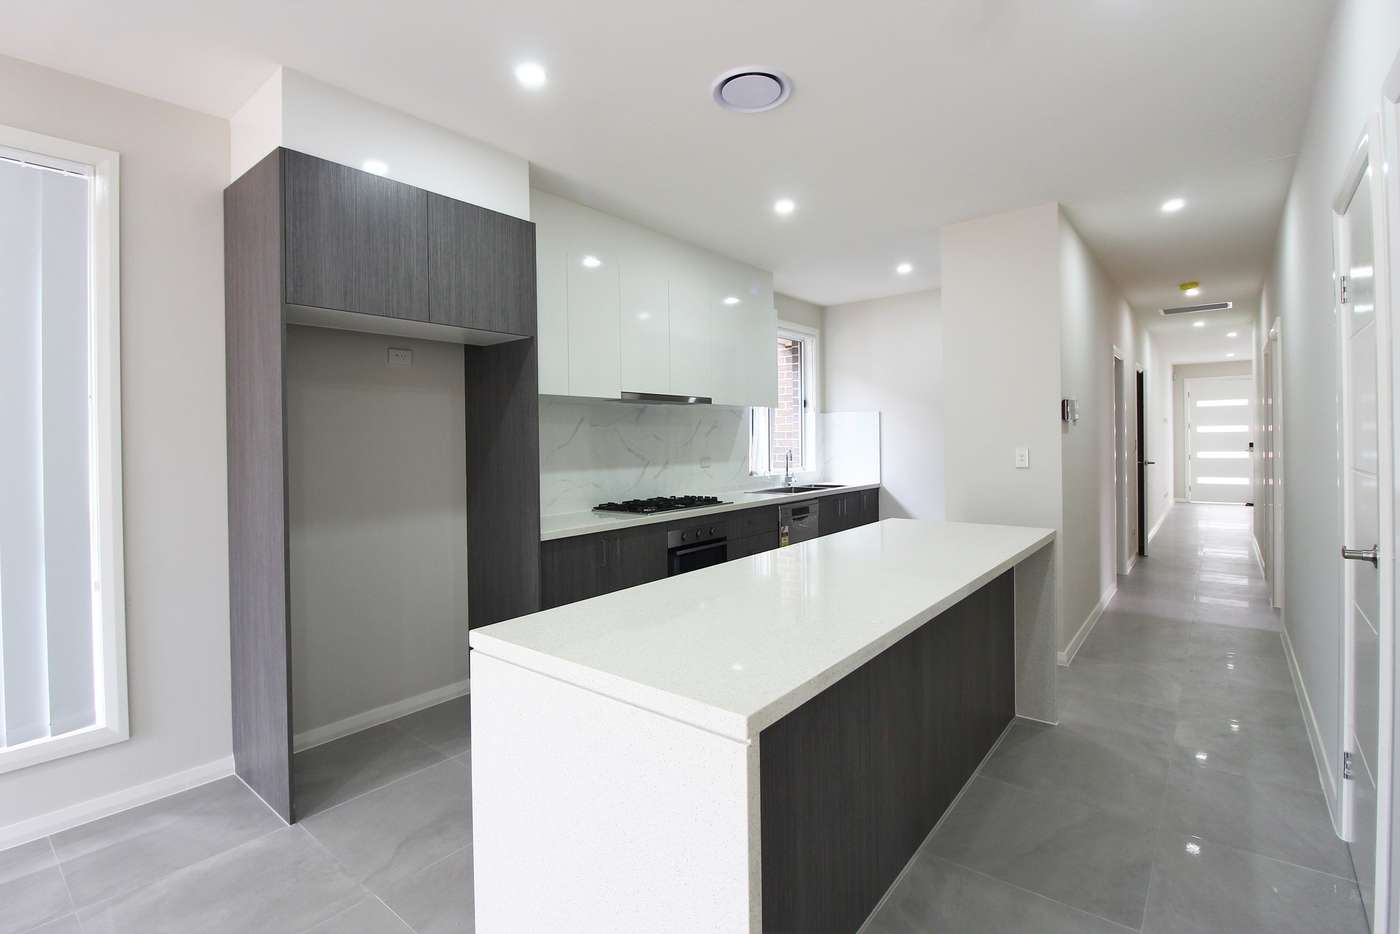 Main view of Homely house listing, 102 Beauchamp Drive, The Ponds NSW 2769